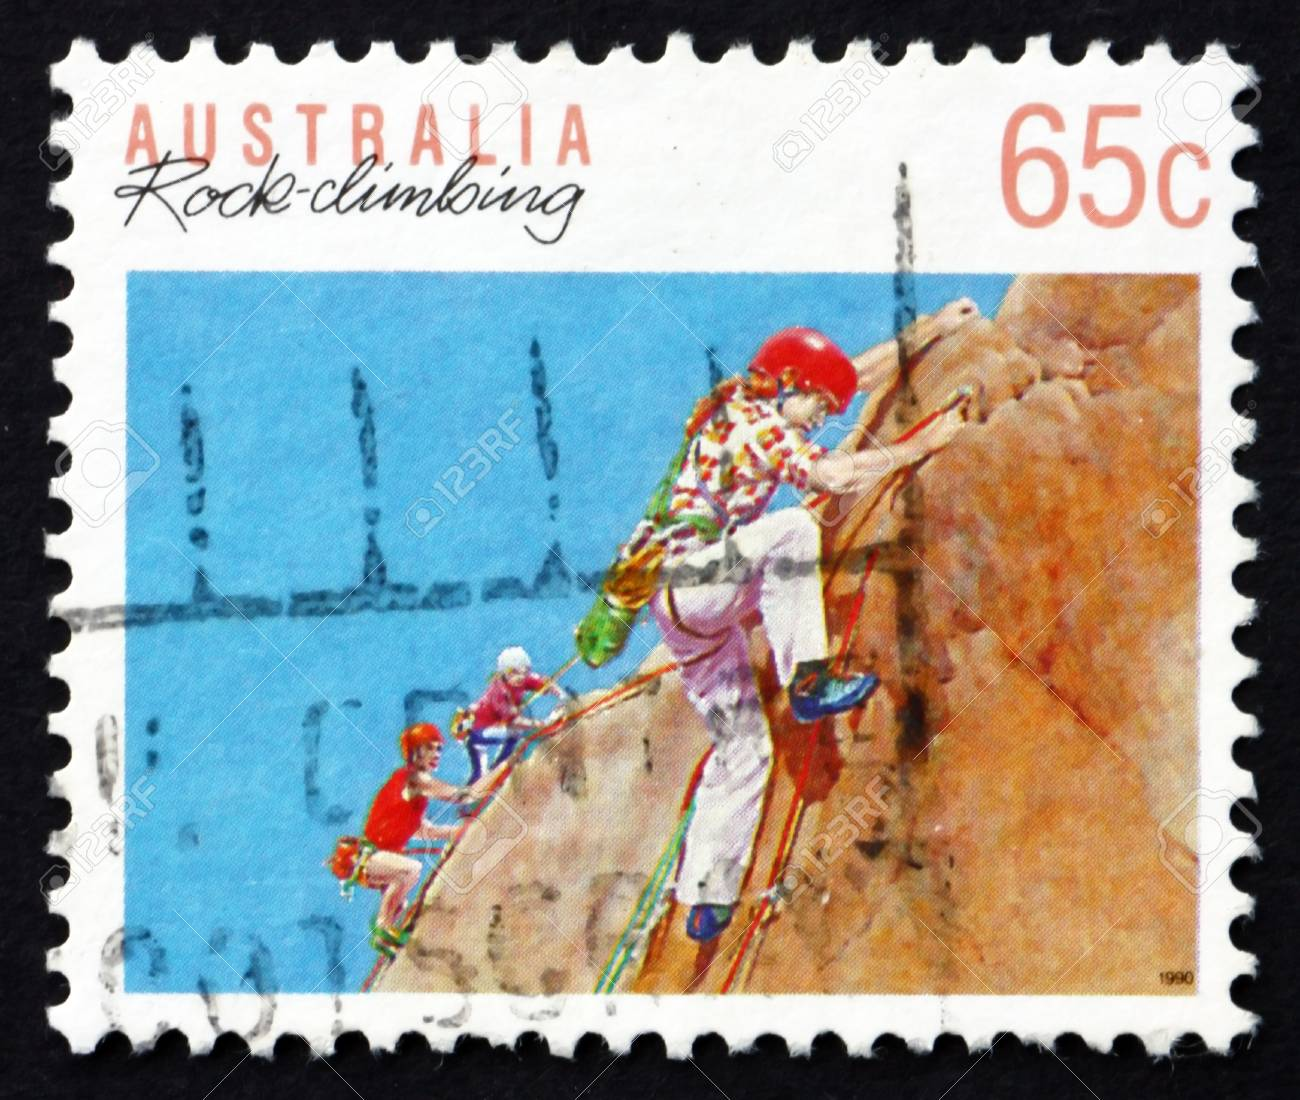 AUSTRALIA - CIRCA 1992: a stamp printed in the Australia shows Rock Climbing, Australian Sport, circa 1992 Stock Photo - 20390263